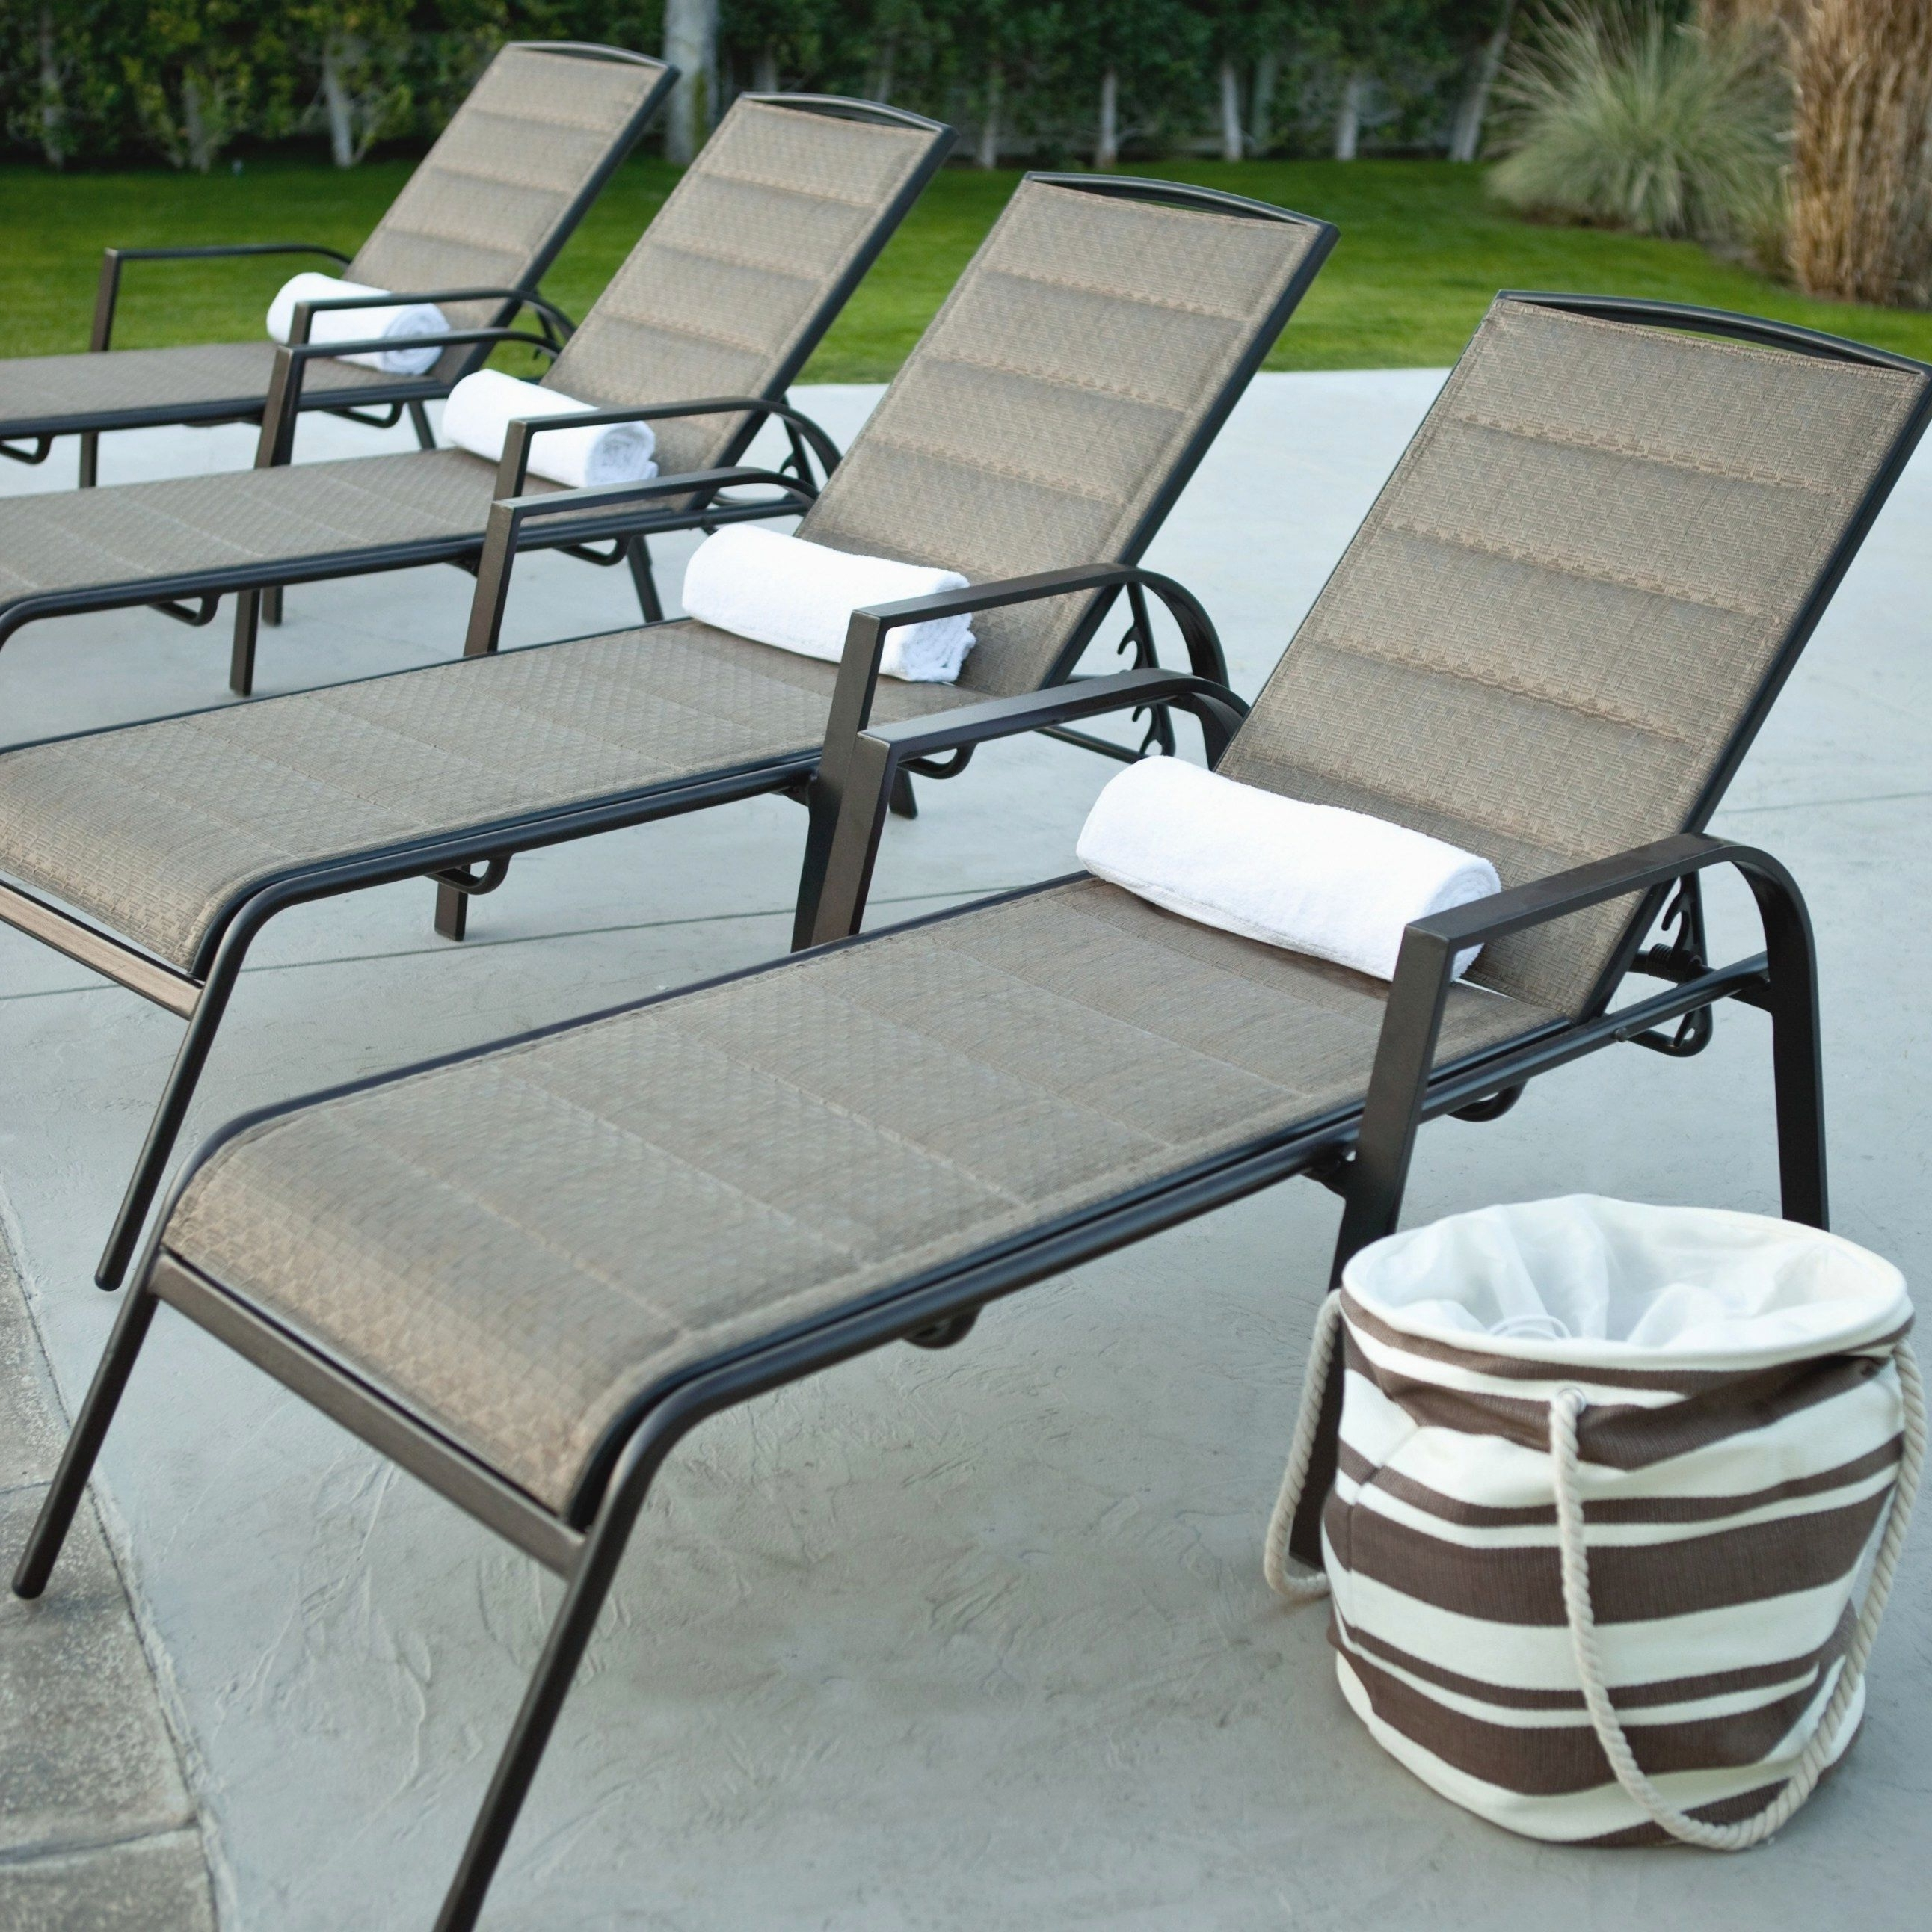 Most Popular Outdoor Chaise Lounge Chairs Under 100 Modern Fresh Ideas Throughout Outdoor Mesh Chaise Lounge Chairs (View 5 of 15)